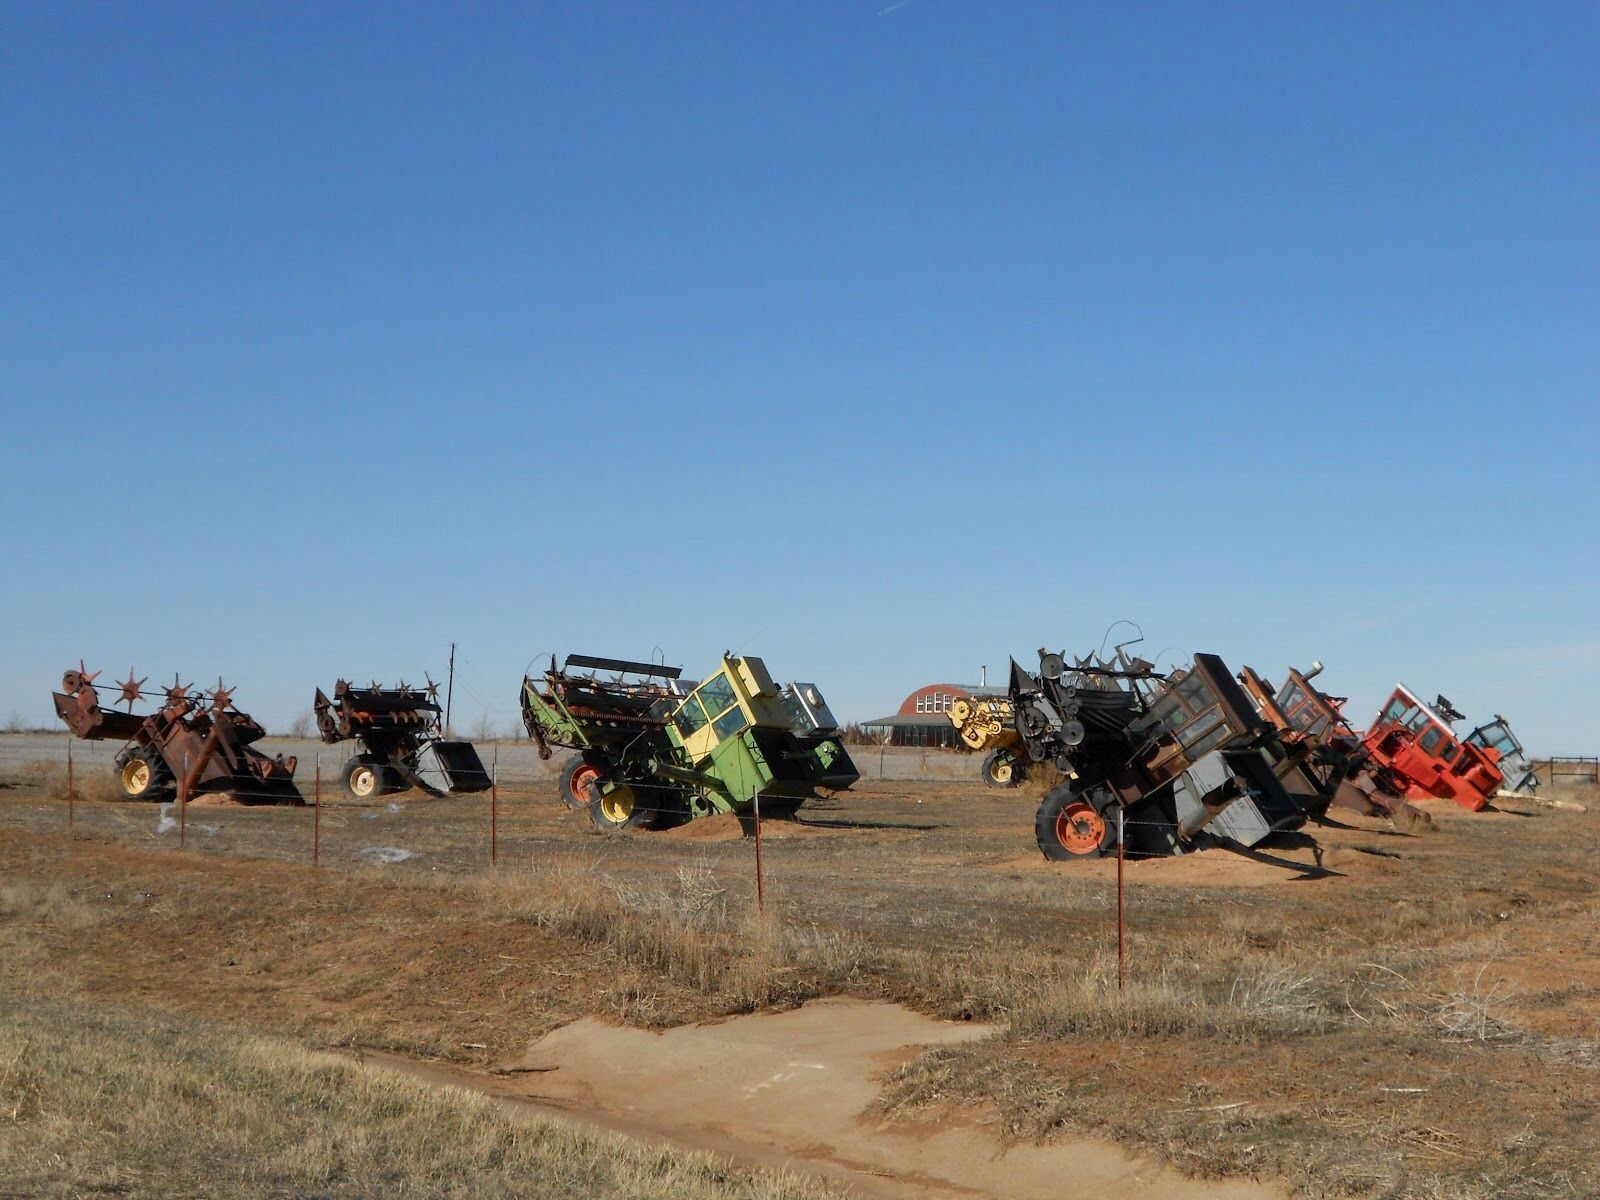 Conway texas tractor ranch is 30 miles east of amarillo